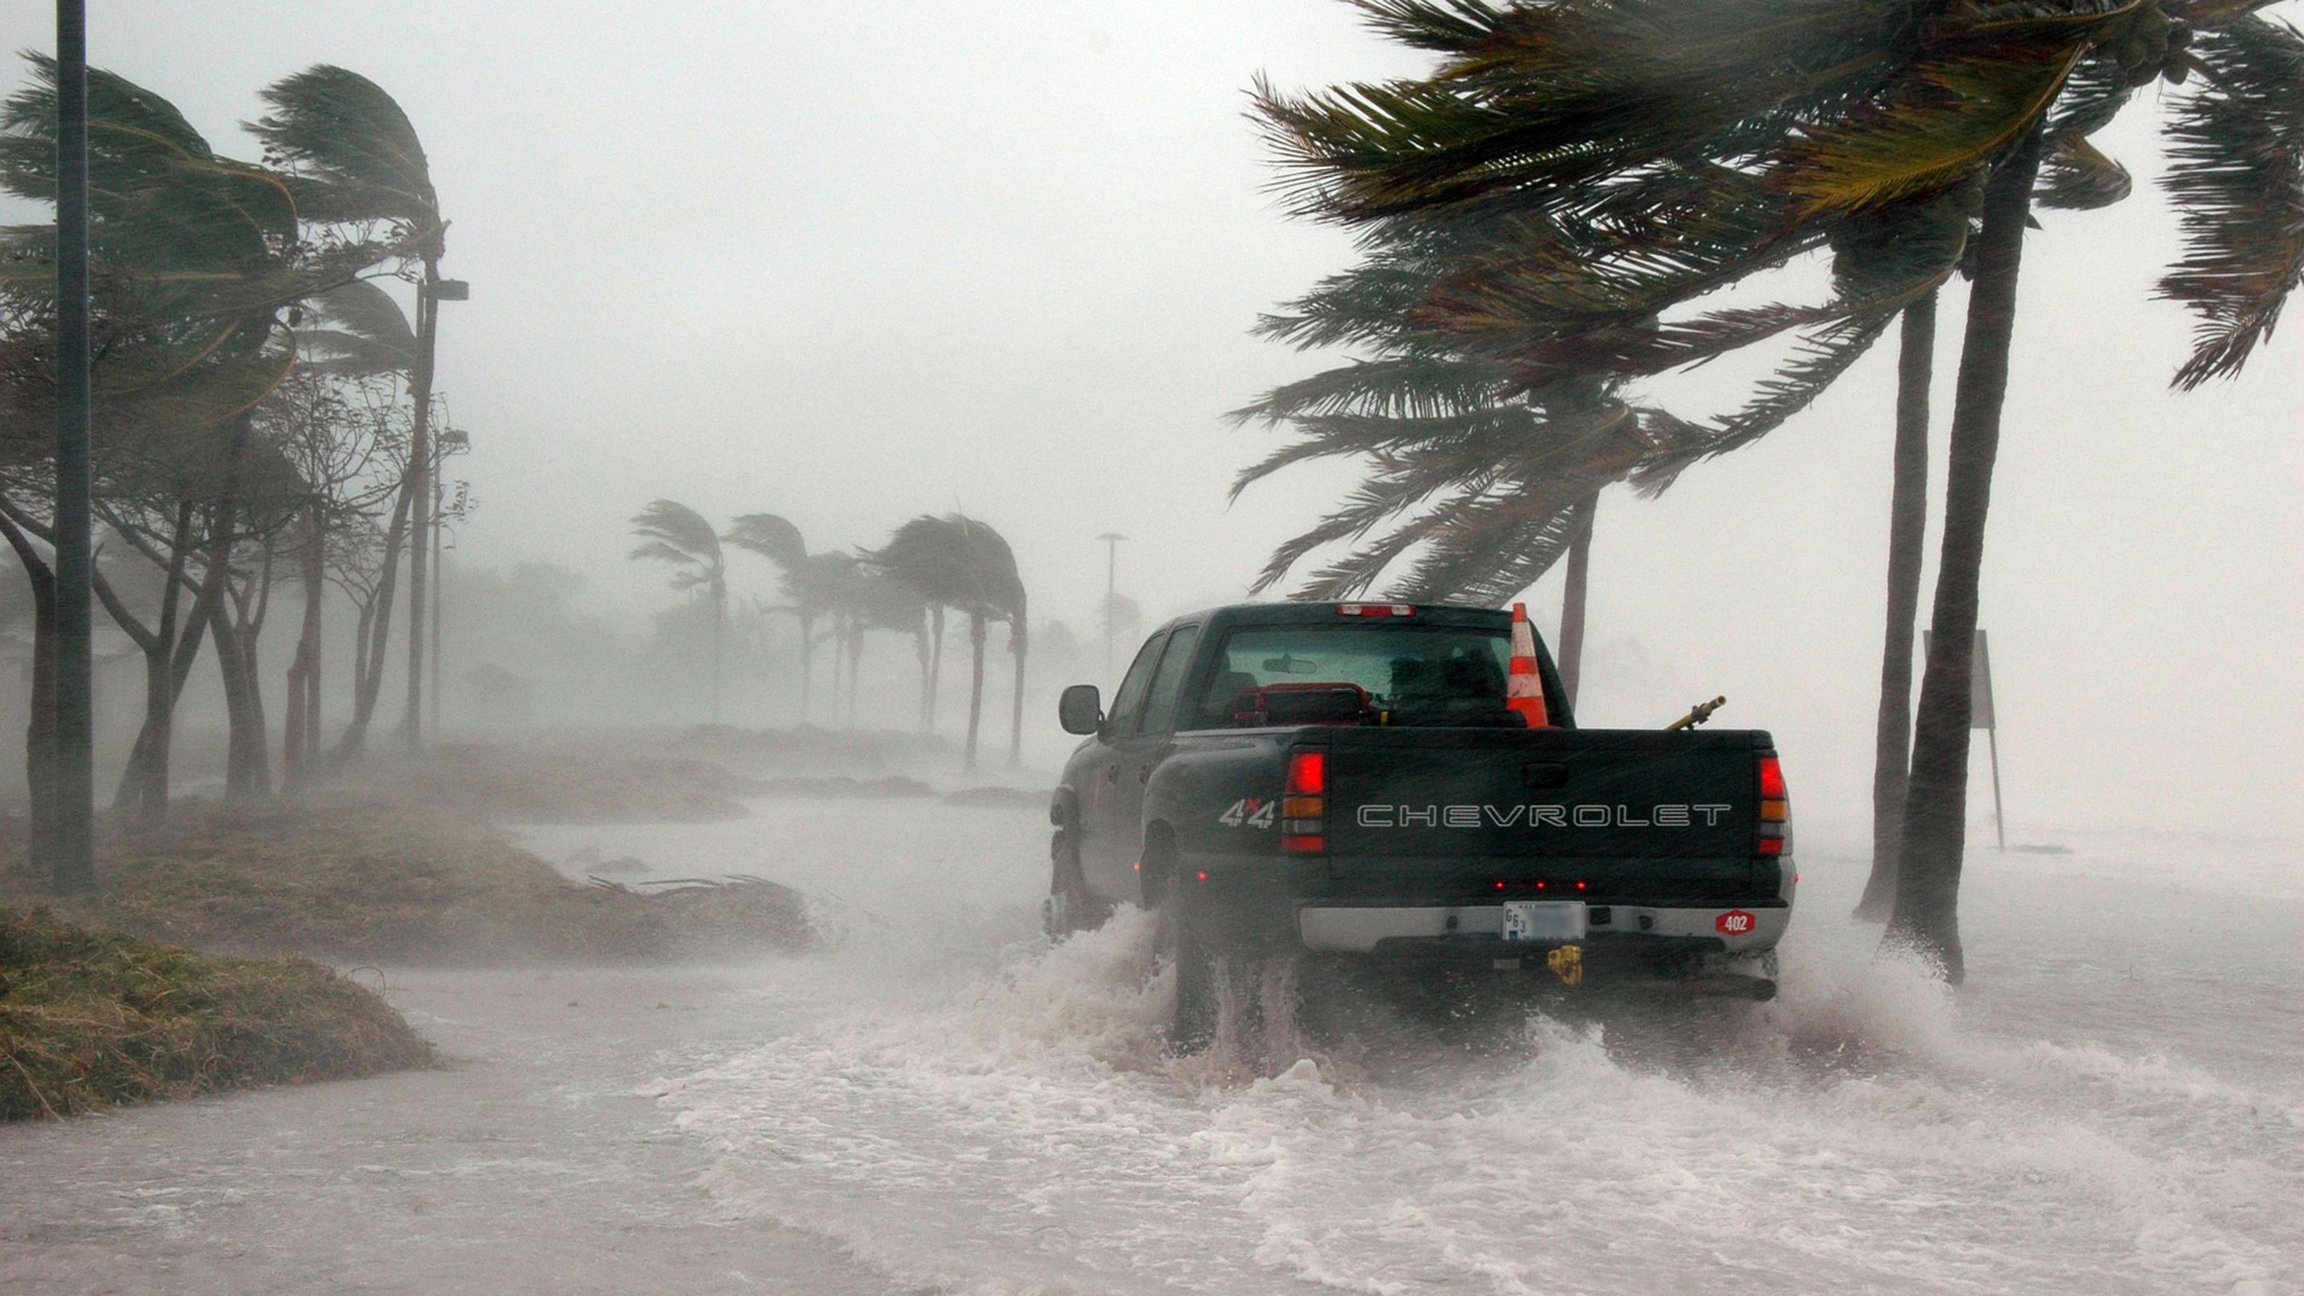 Climate Change and Infrastructure Failings in Extreme Weather